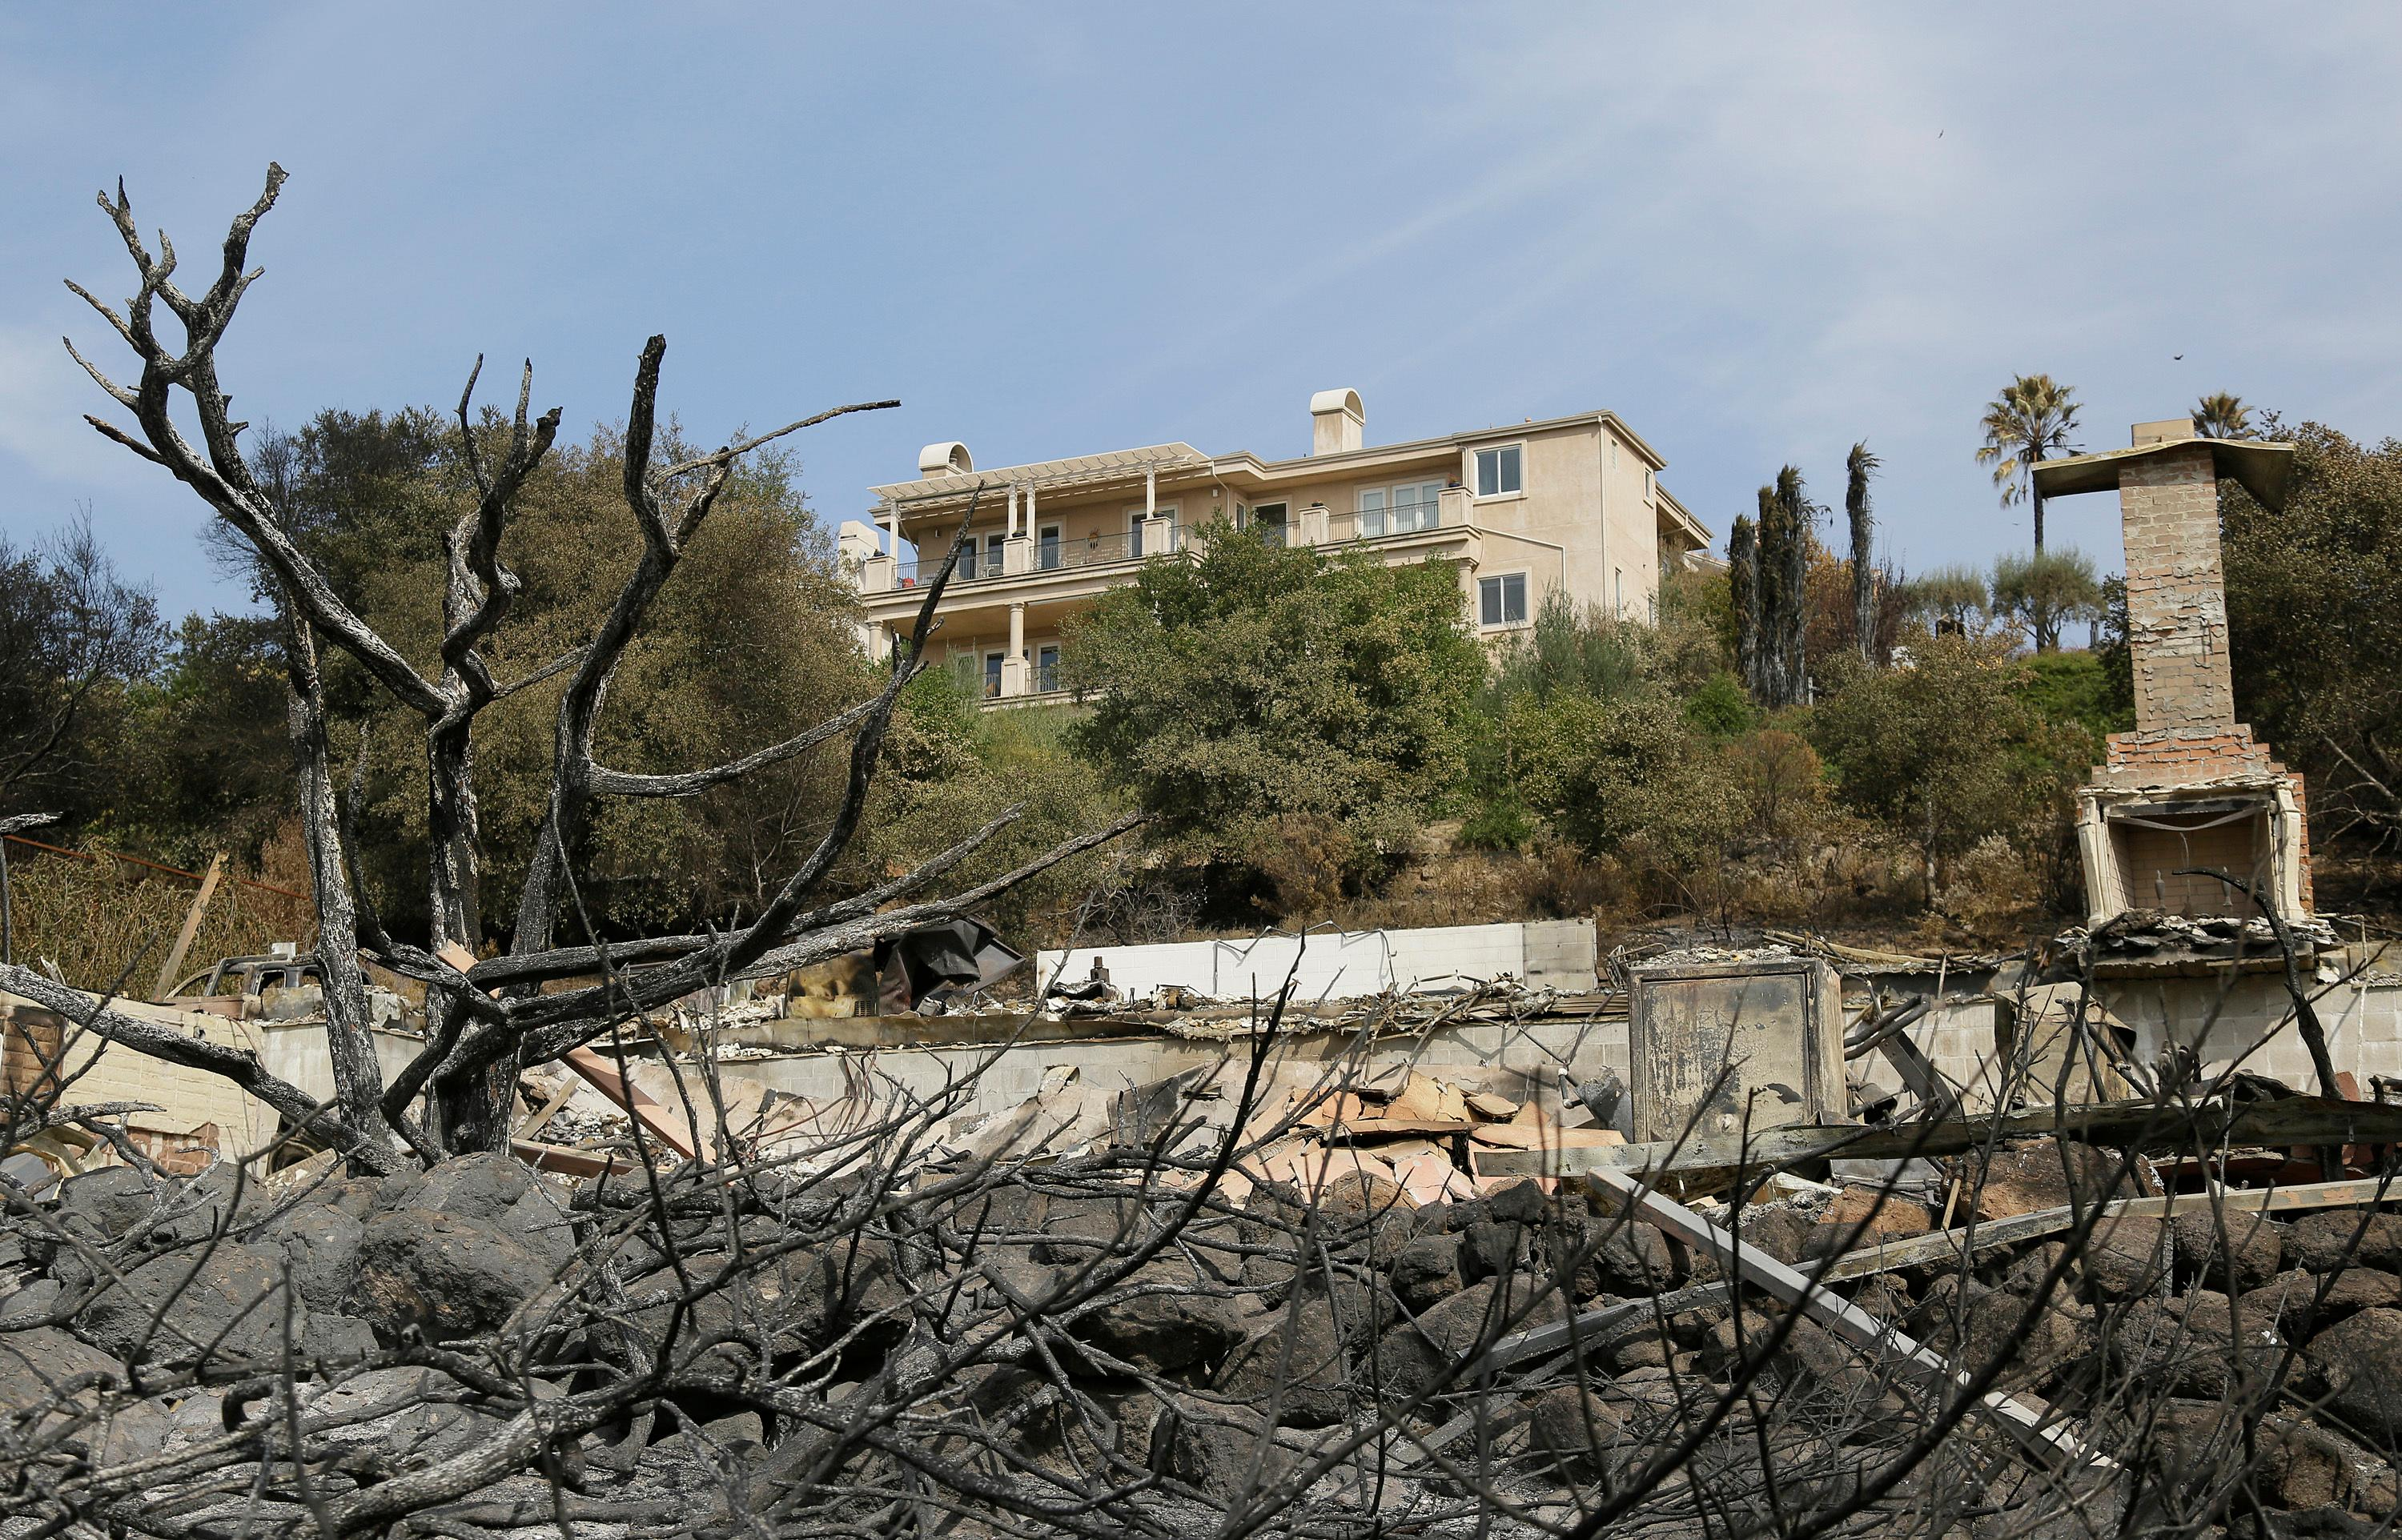 A house stands intact above one that was destroyed by wildfire near Atlas Peak Road, Monday, Oct. 16, 2017, in Napa, Calif. State and local officials say they are trying to get people back into their homes, but they cautioned that it could take days and even weeks for neighborhoods hard hit by Northern California wildfires. (AP Photo/Eric Risberg)